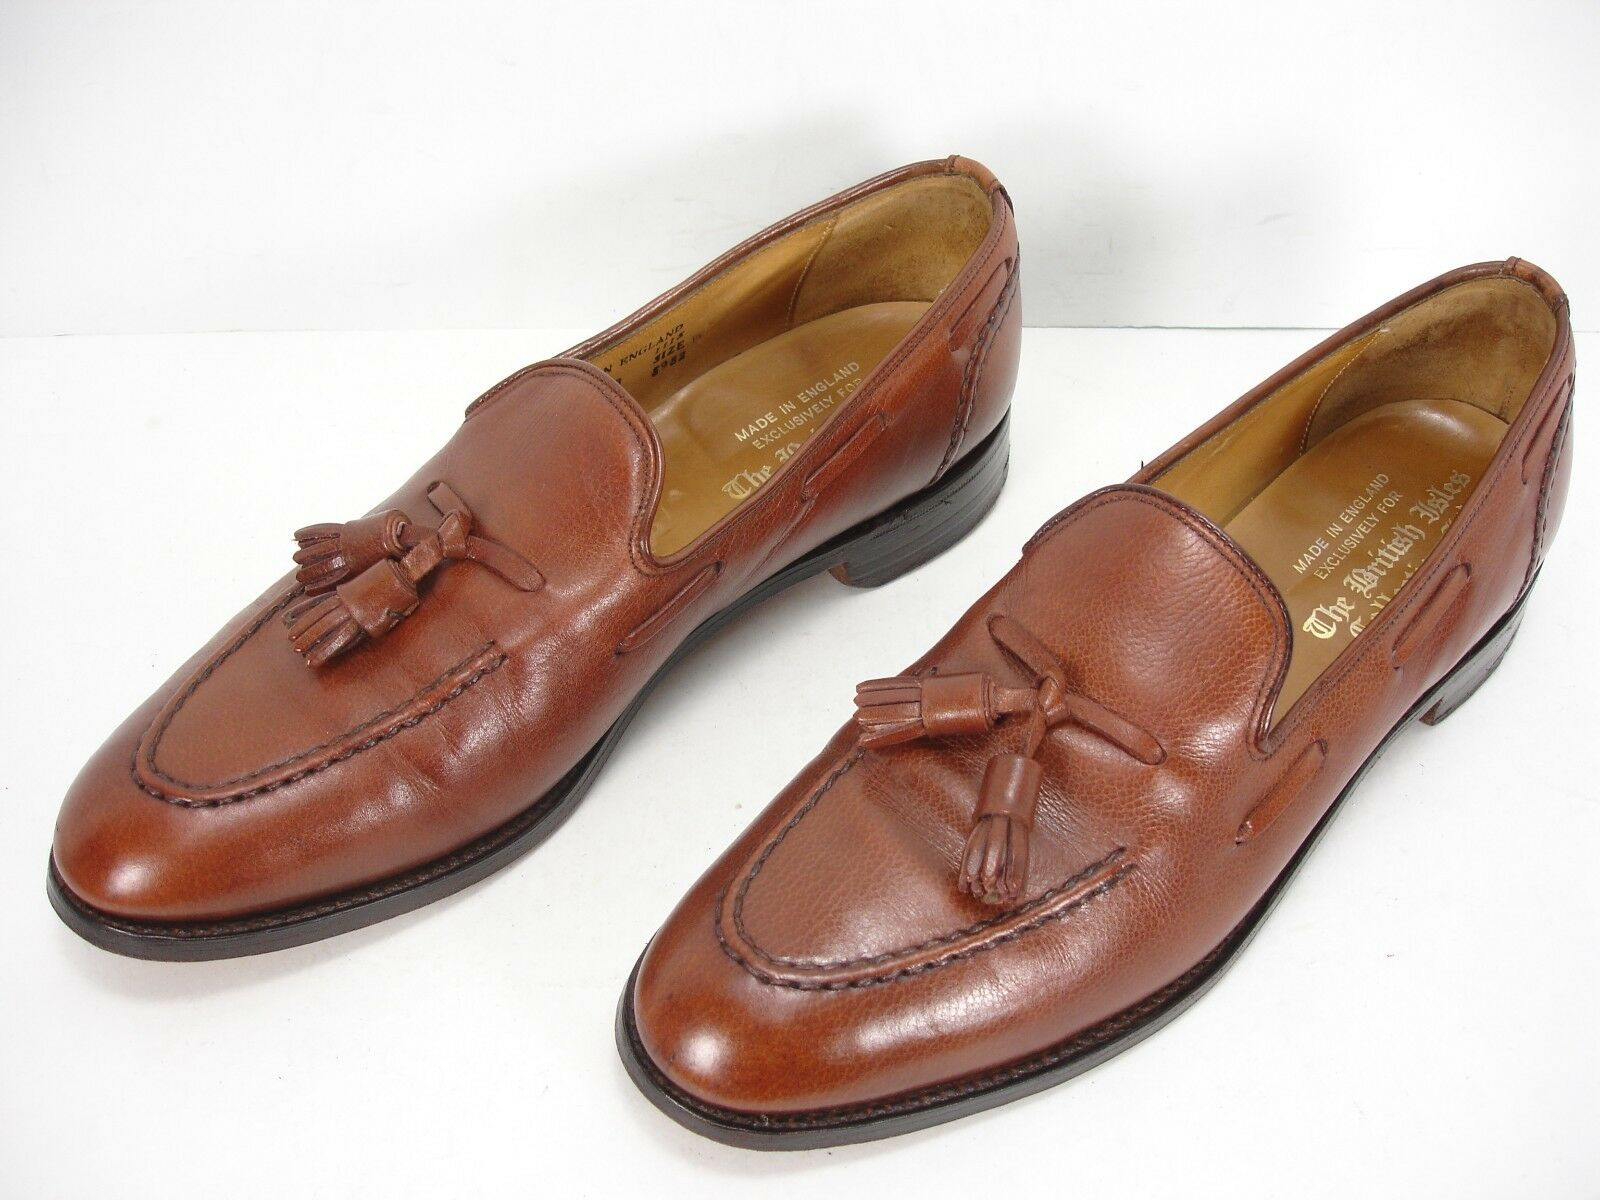 THE BRITISH ISLES COLLECTION LTD LEATHER TASSEL LOAFERS DRESS SHOES MEN'S 10 B